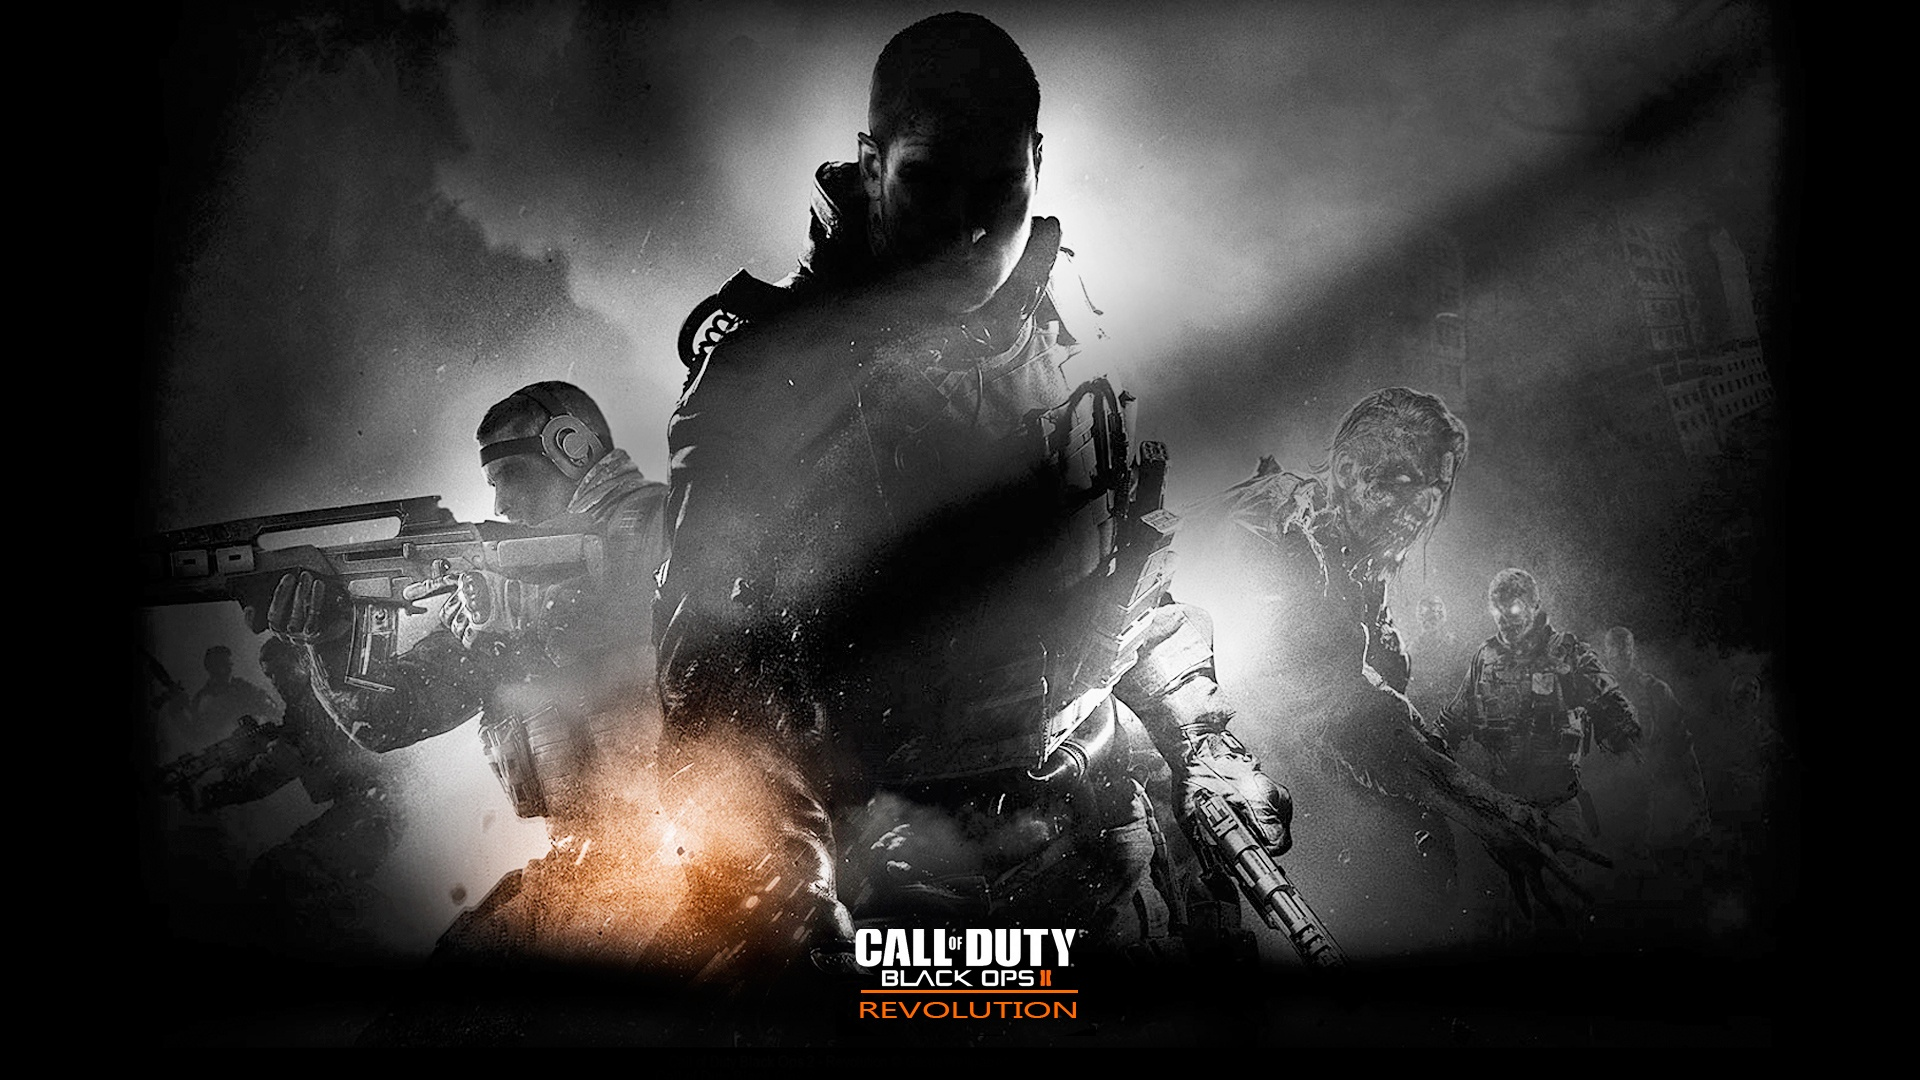 36 Call Of Duty Backgrounds Download Free Beautiful Hd: Call Of Duty Black Ops 2 Game